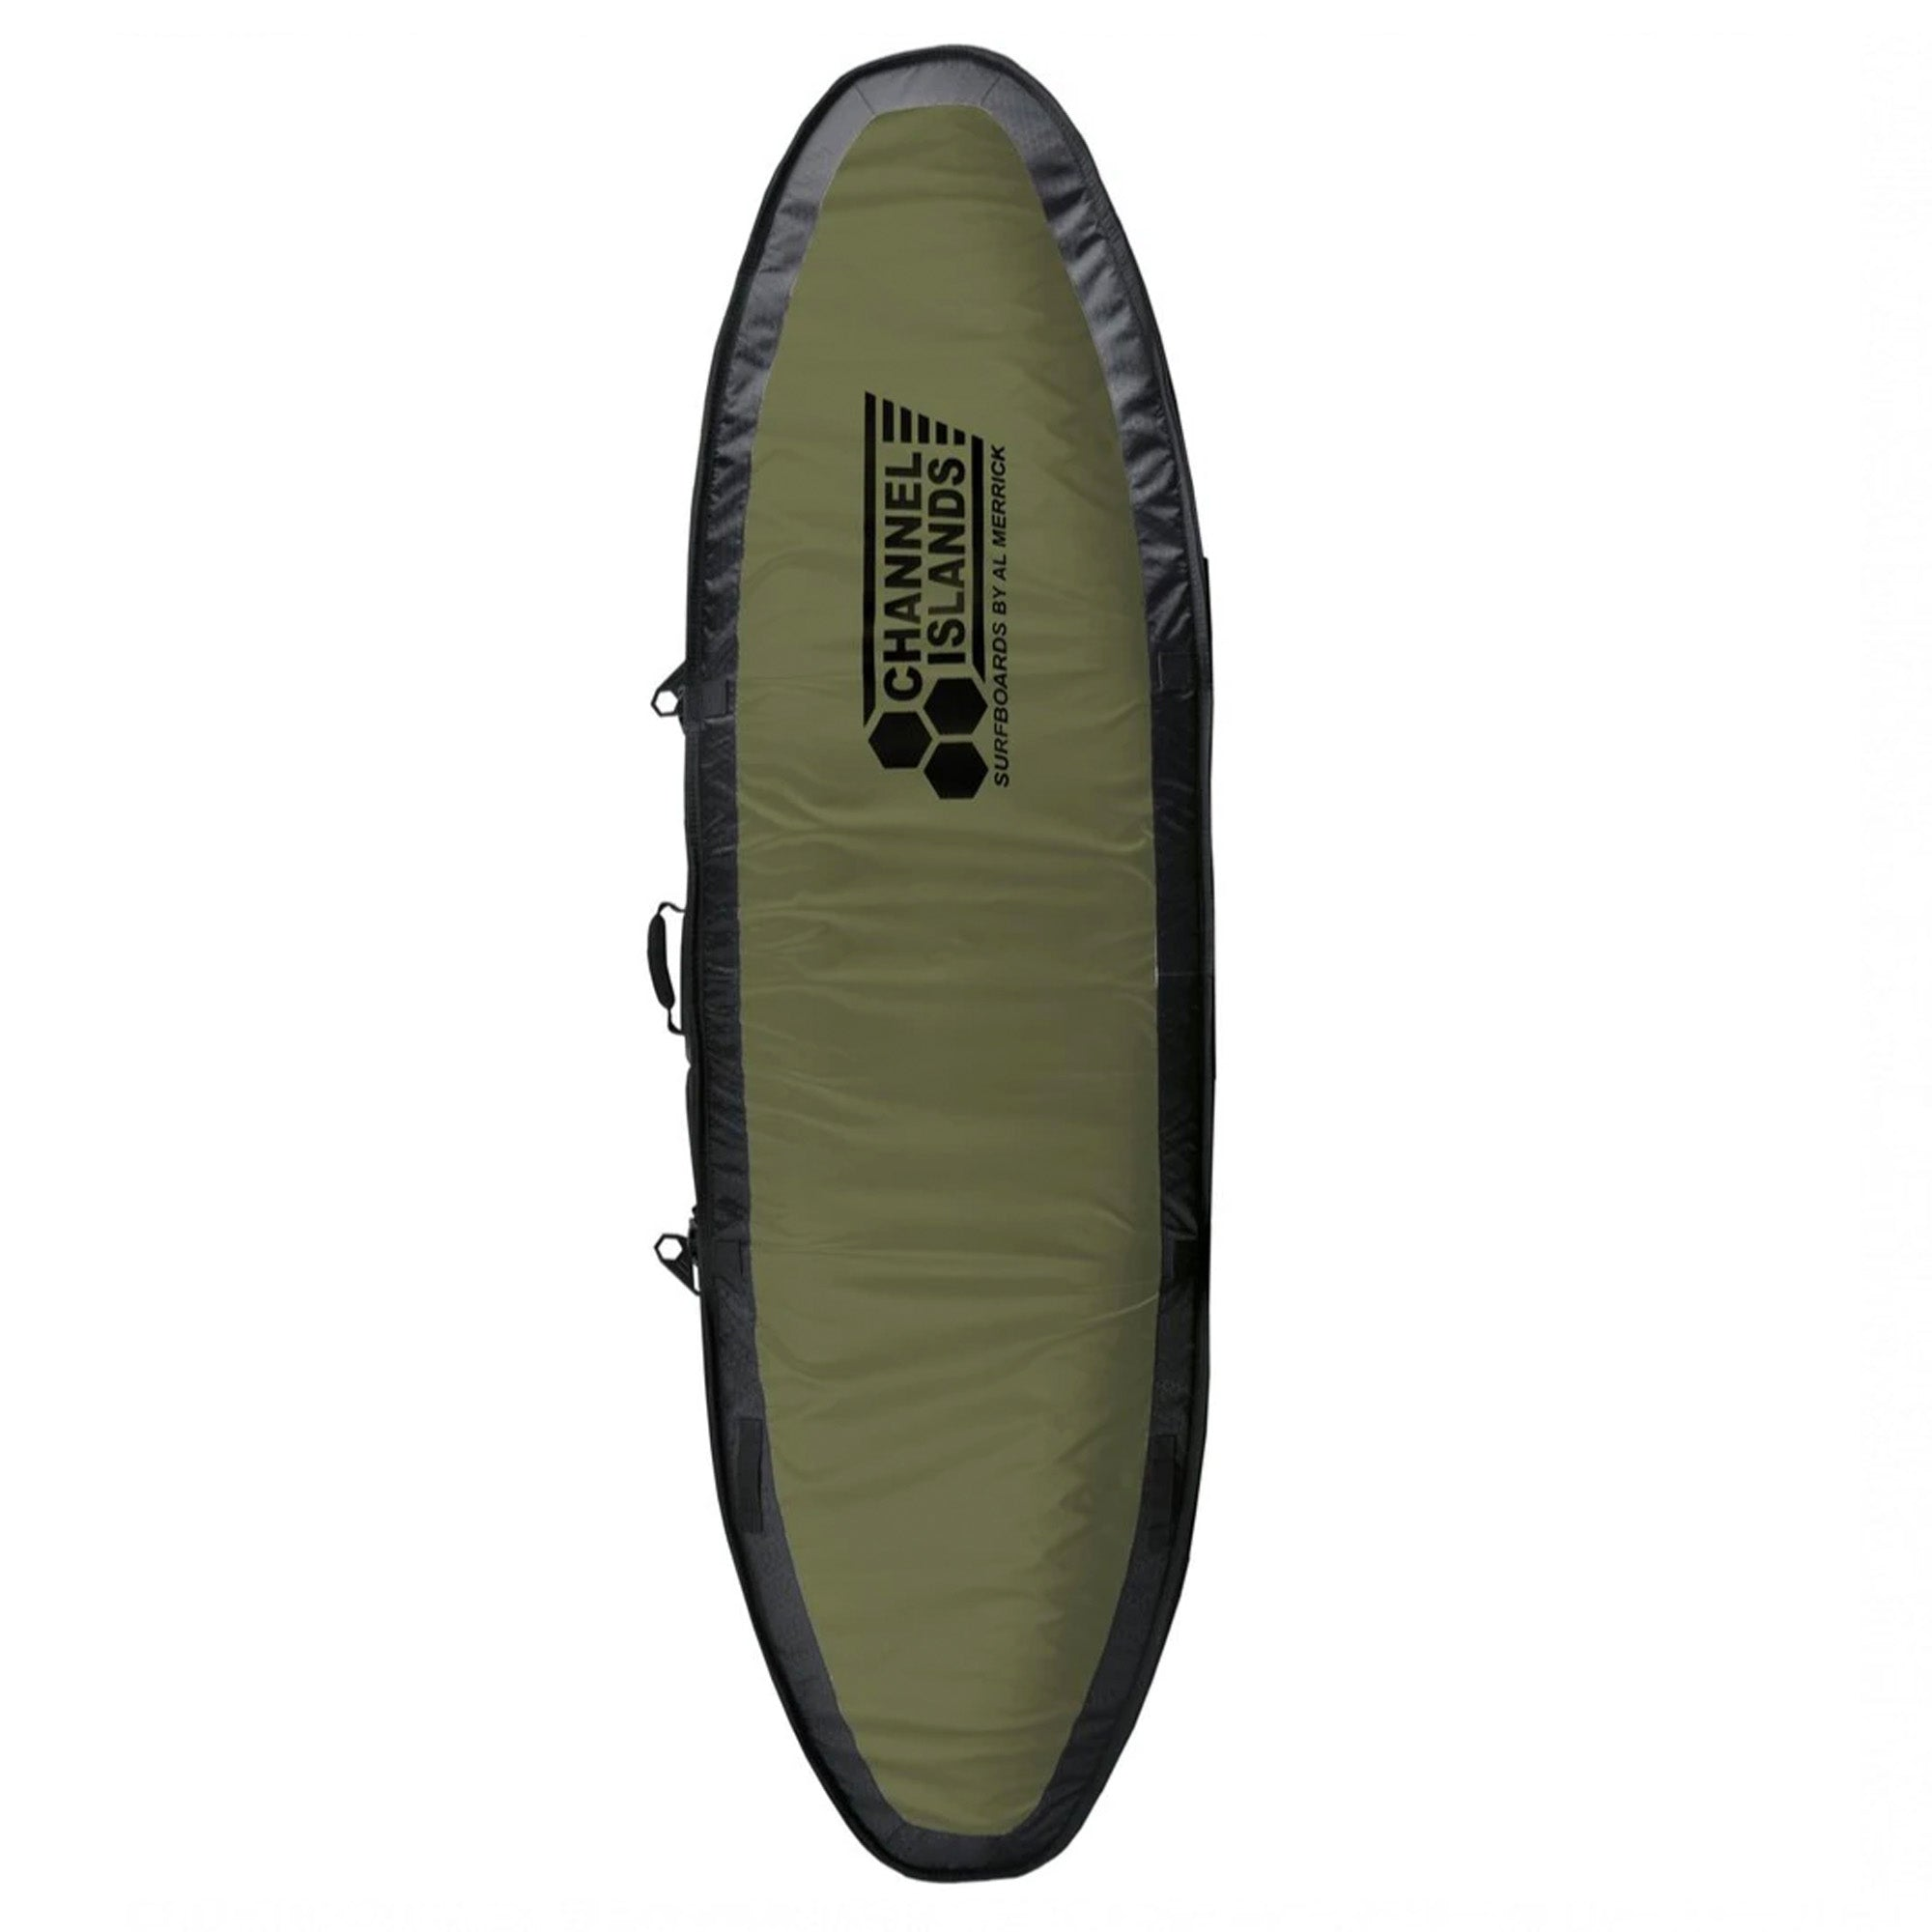 Channel Islands Travel Light CX4 Quad Surfboard Bag